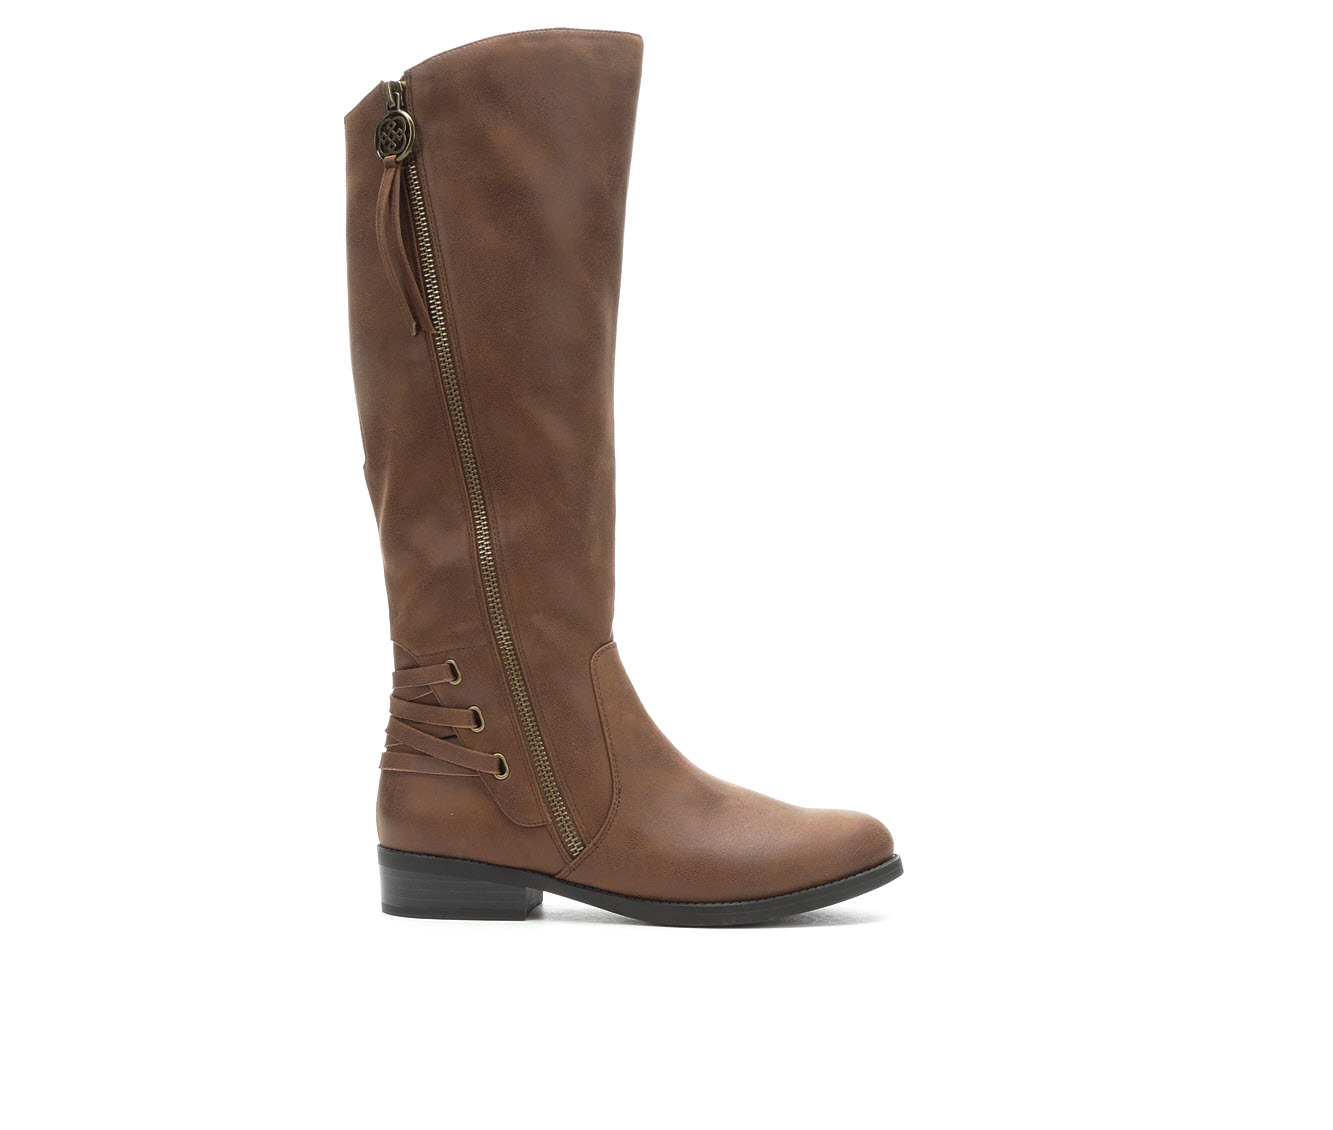 Daisy Fuentes Tavie Women's Boot (Brown Faux Leather)